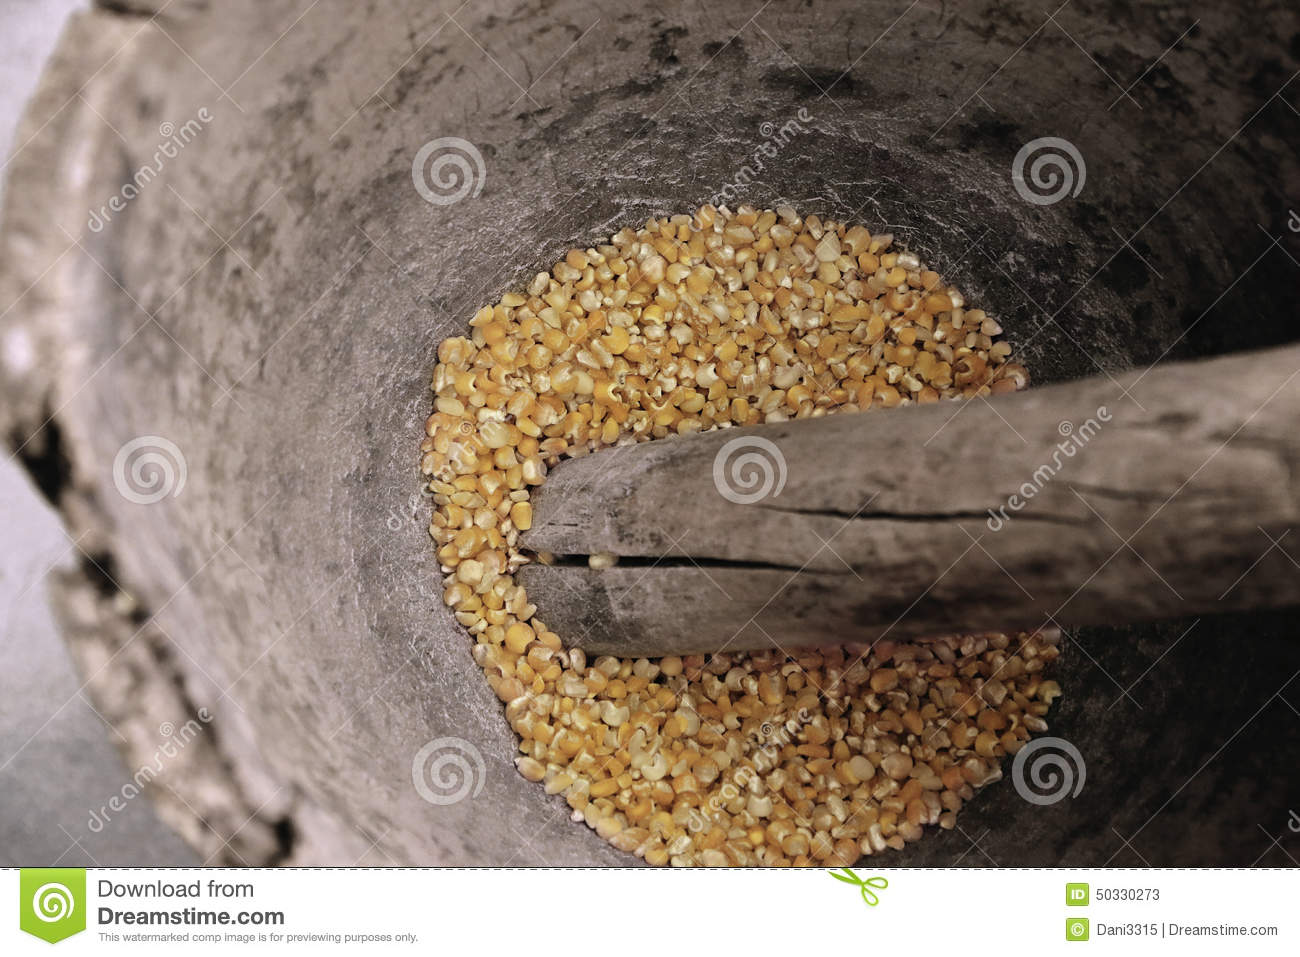 Corn Being Grinded With Mortar And Pestle Made Of Wood To